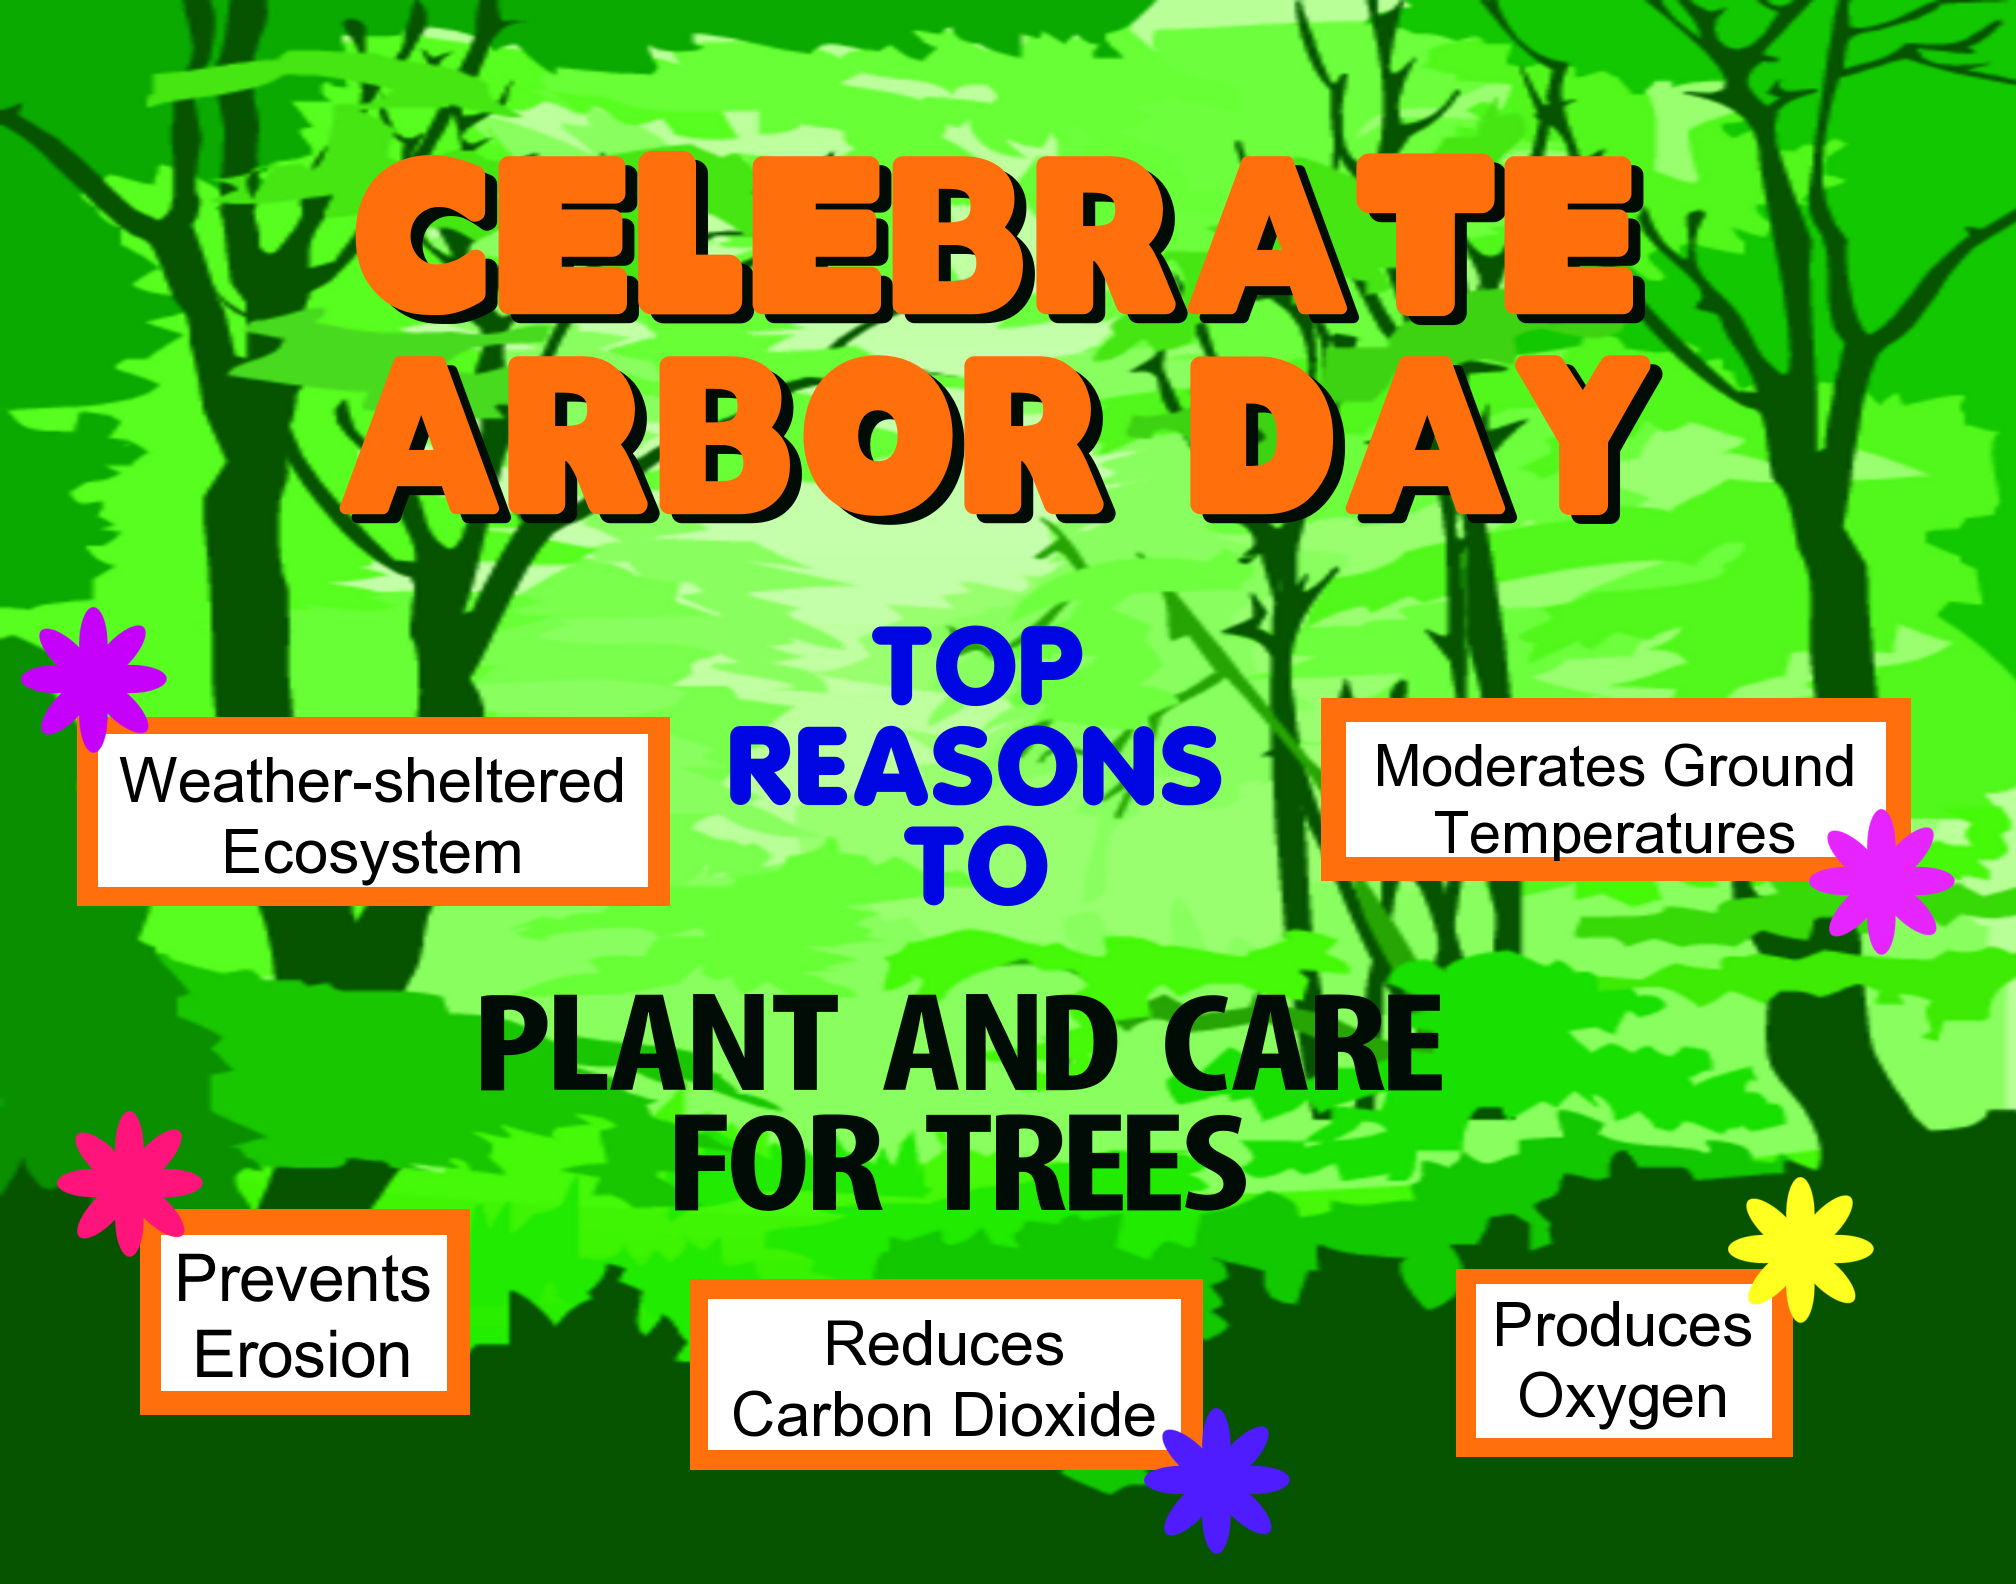 Make A Tree Conservation Poster Arbor Day Poster Ideas